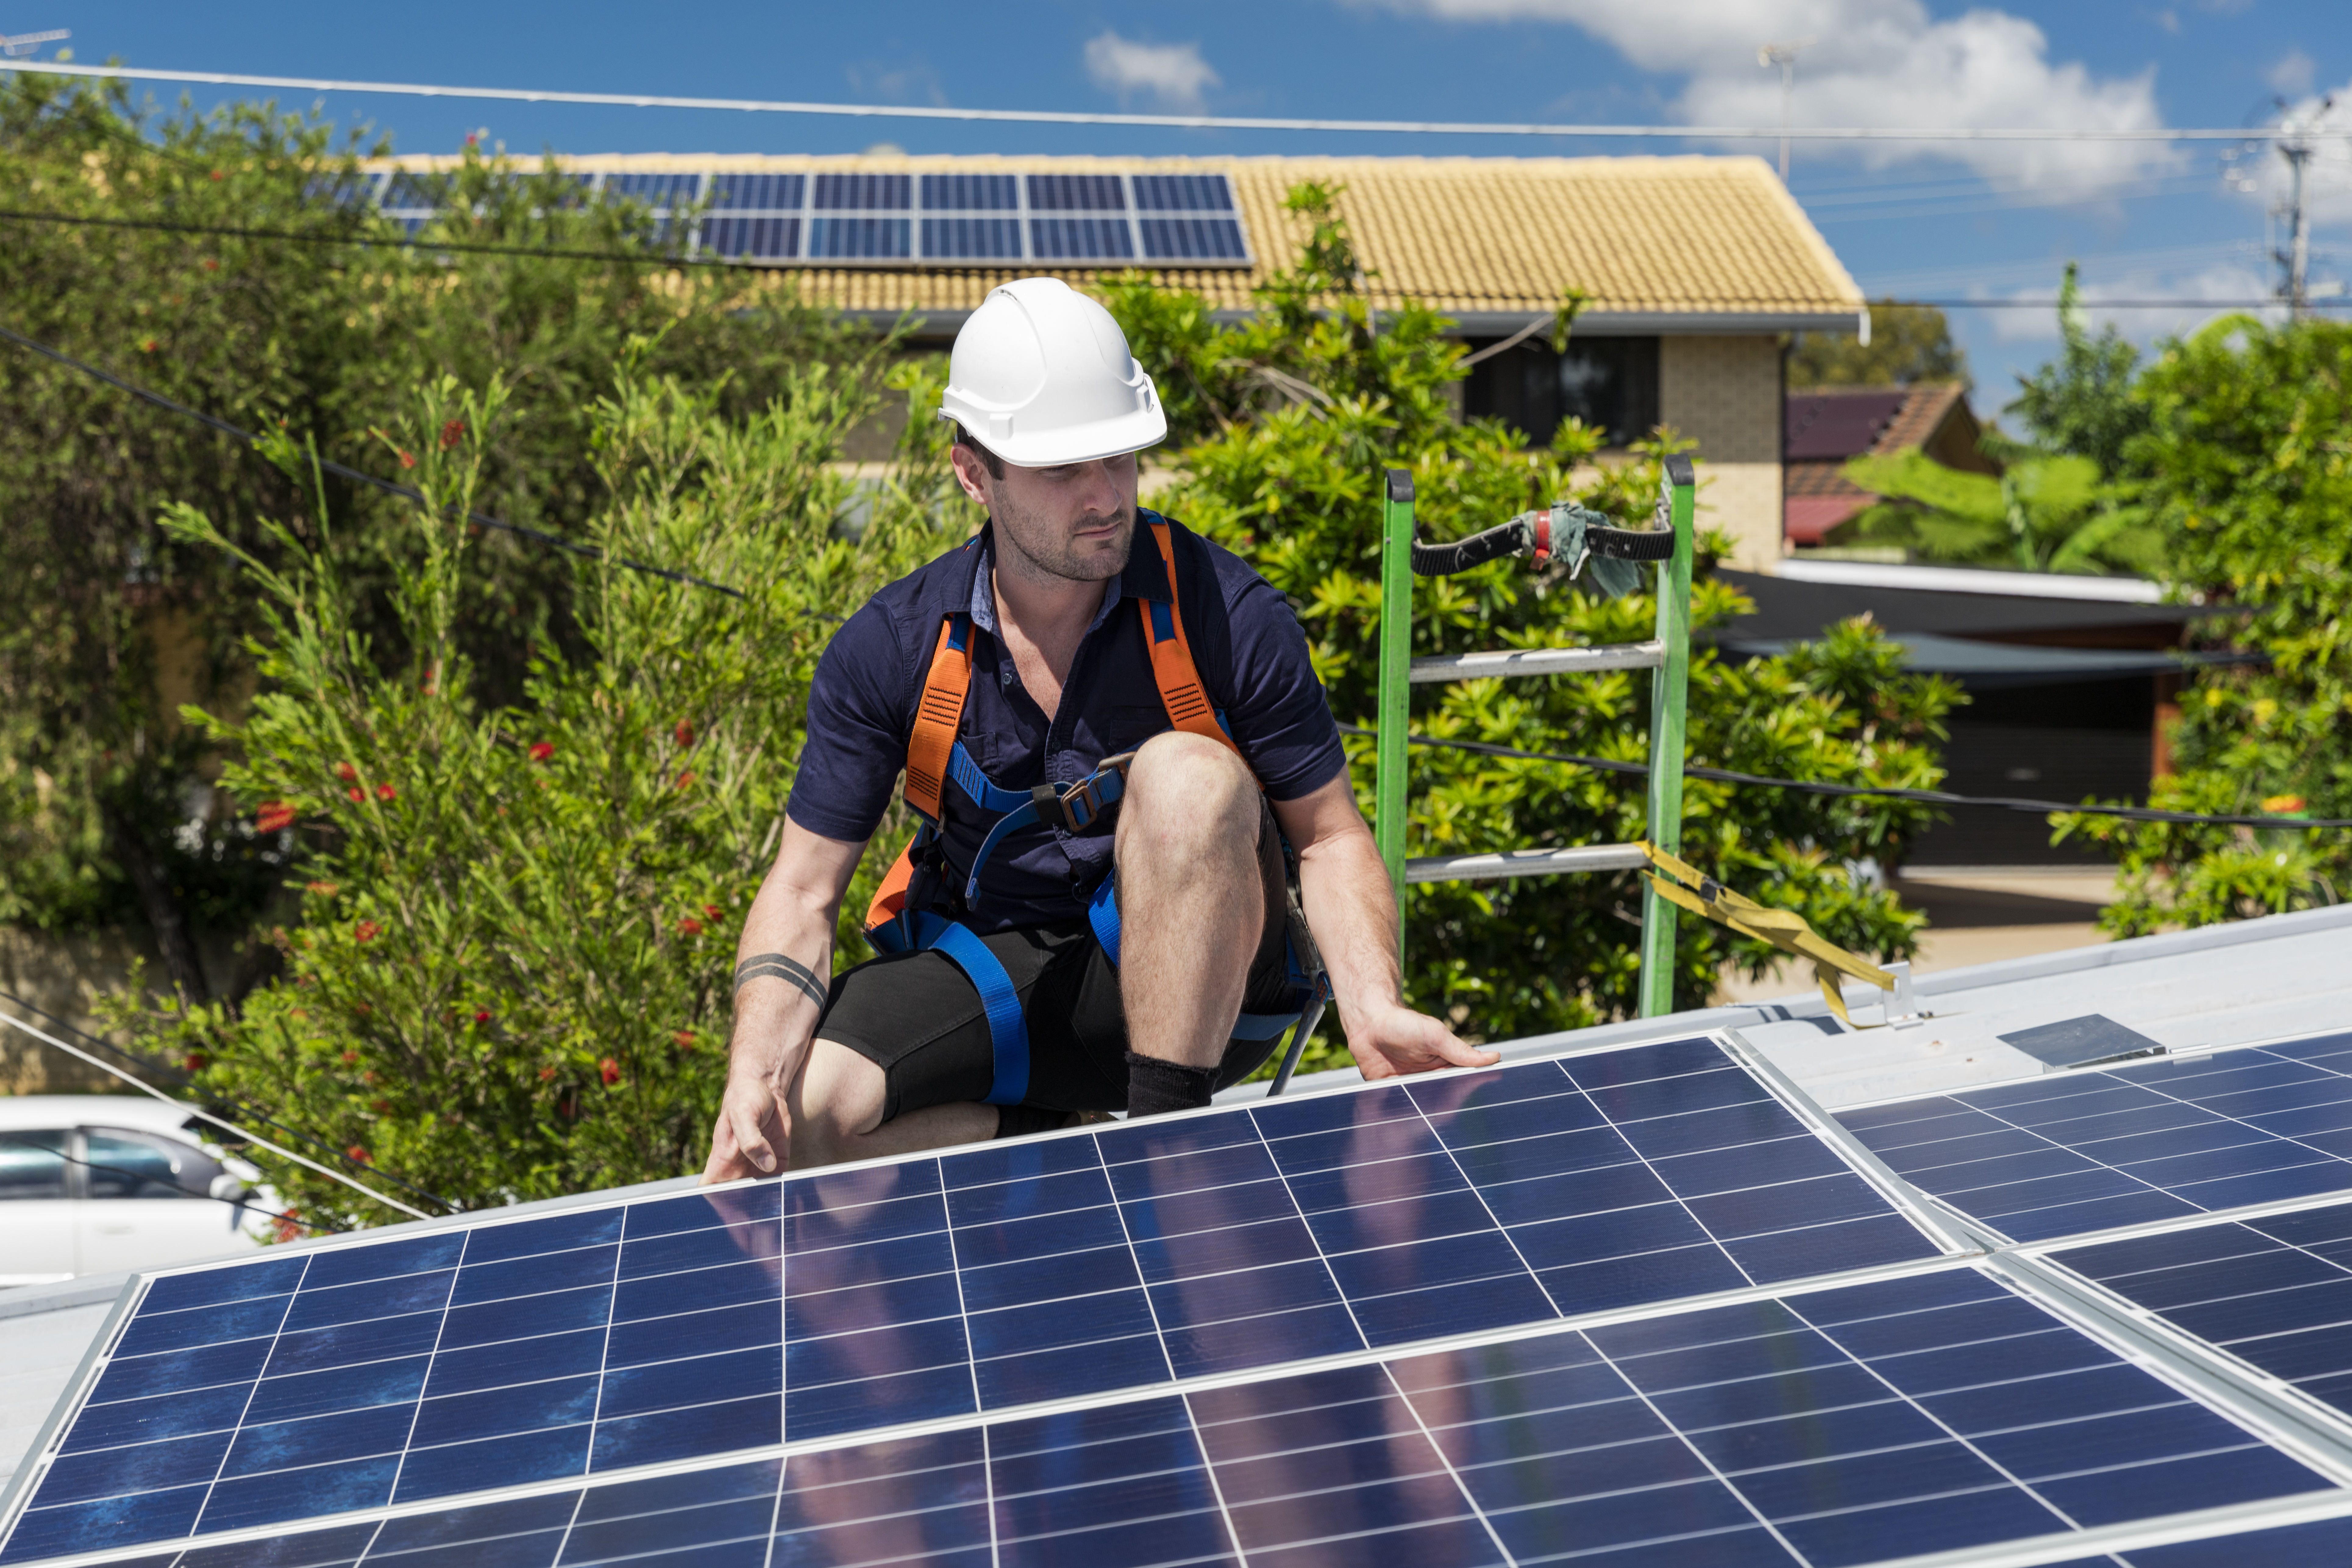 Solar panel technician with drill installing solar panels on roof